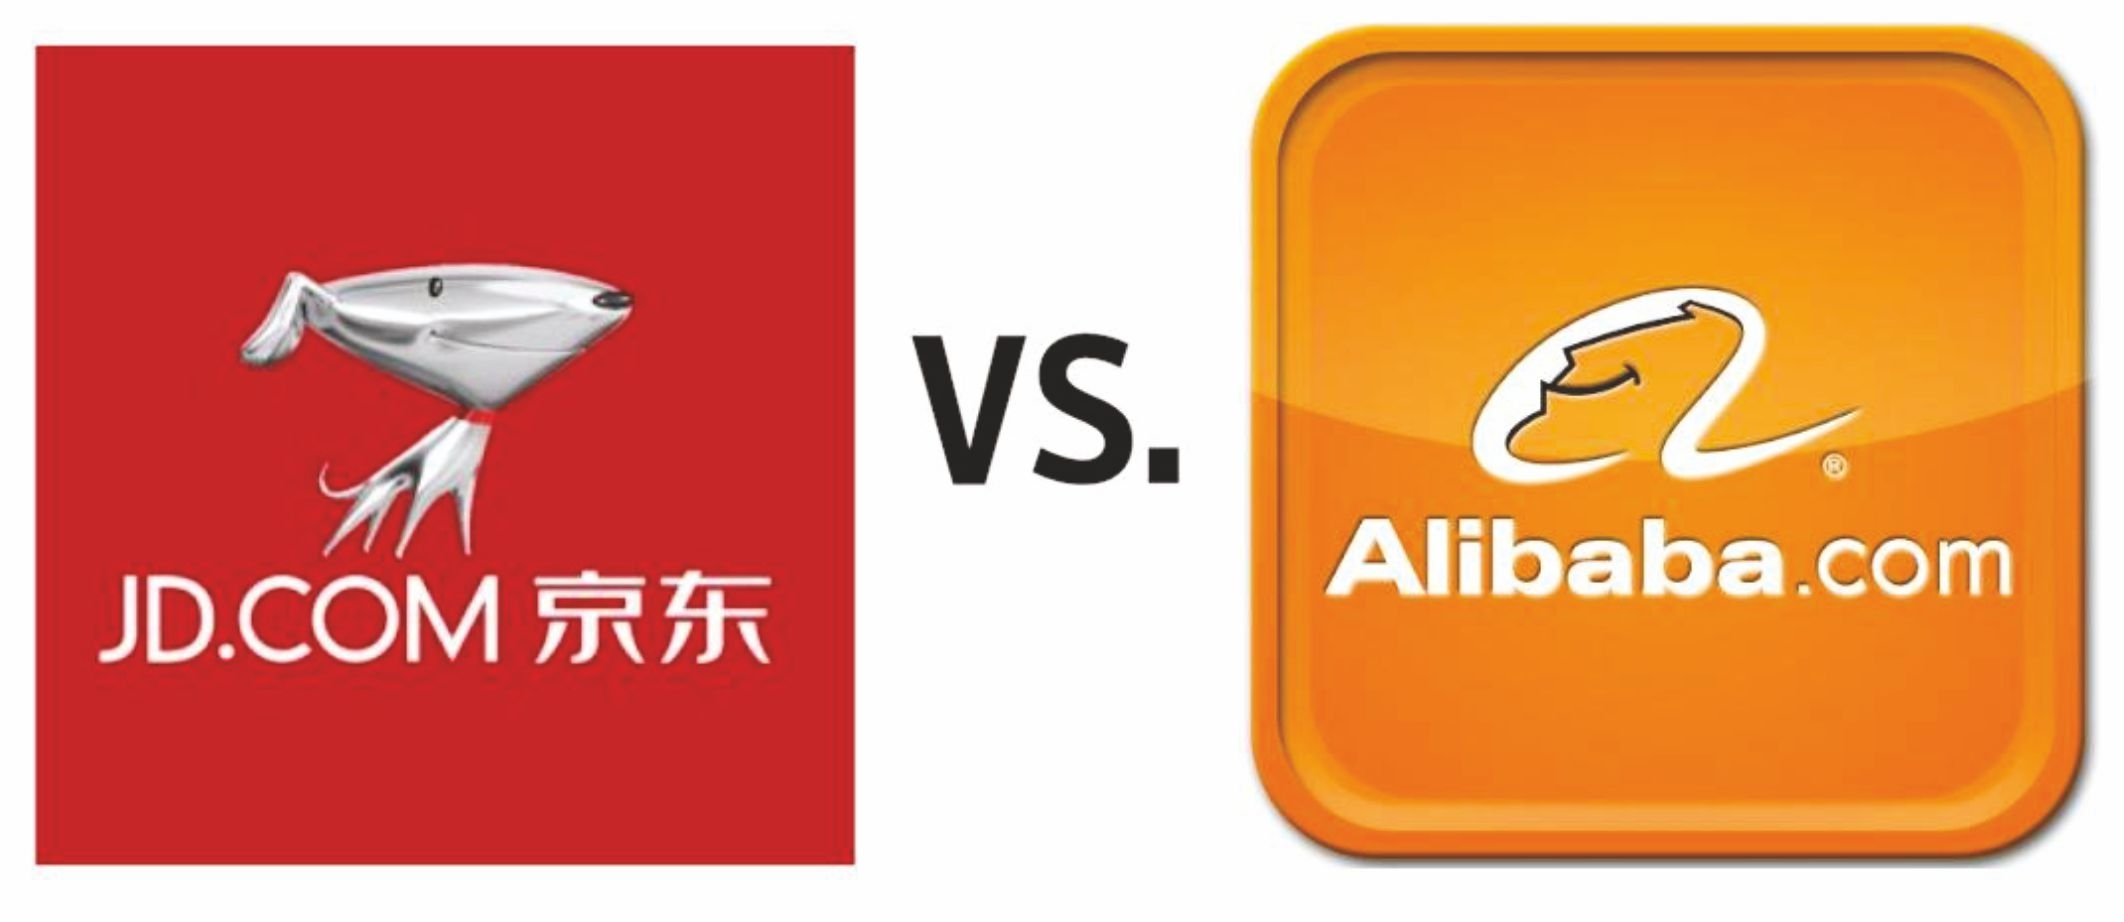 jd.com takes on Alibaba